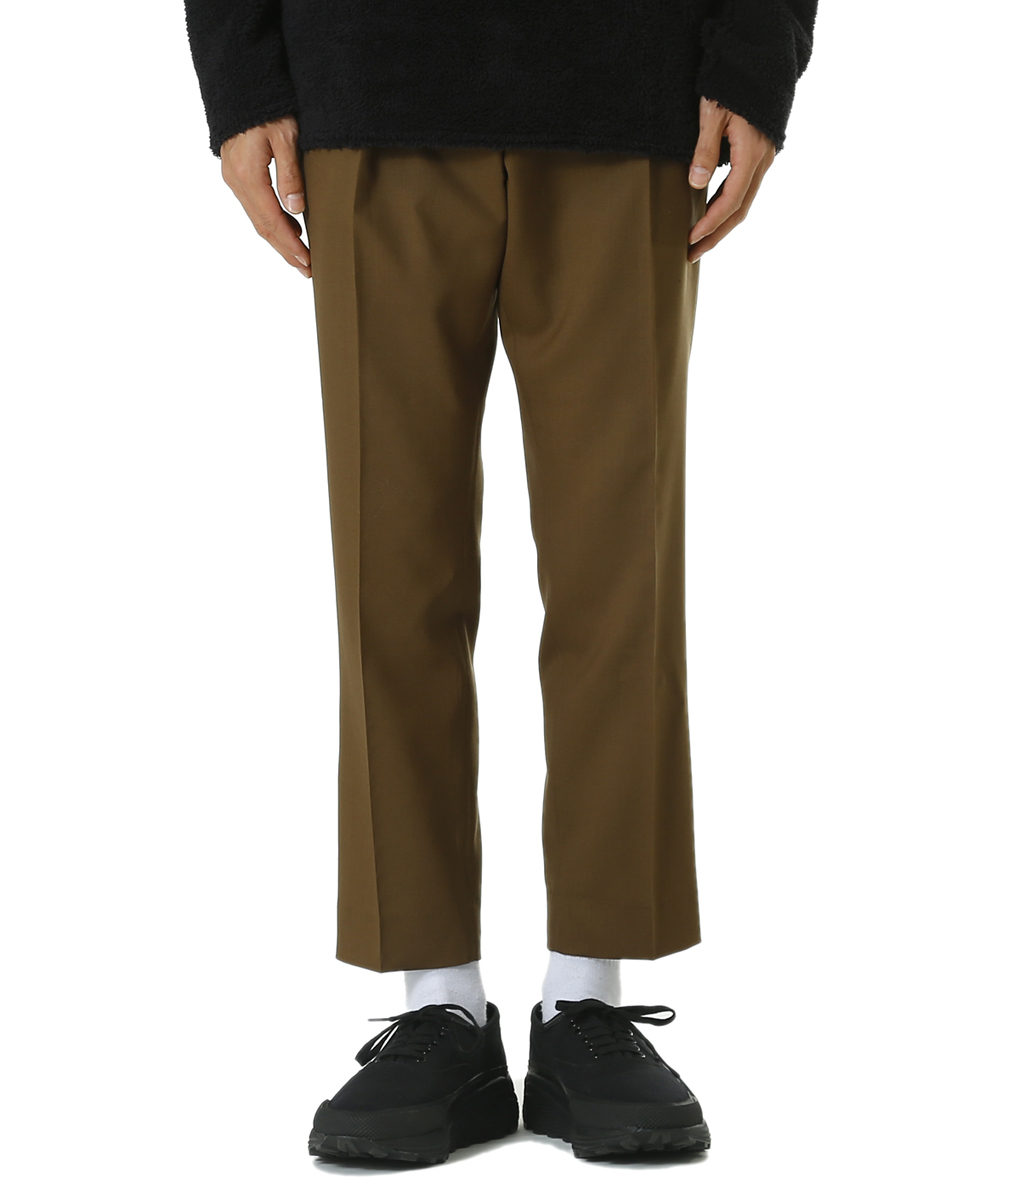 MARKAWARE / マーカウェア : TIGHT FIT TROUSERS -ORGANIC WOOL TROPICAL- : タイト フィット トラウザー : A19A-11PT03C 【MUS】【WIS】